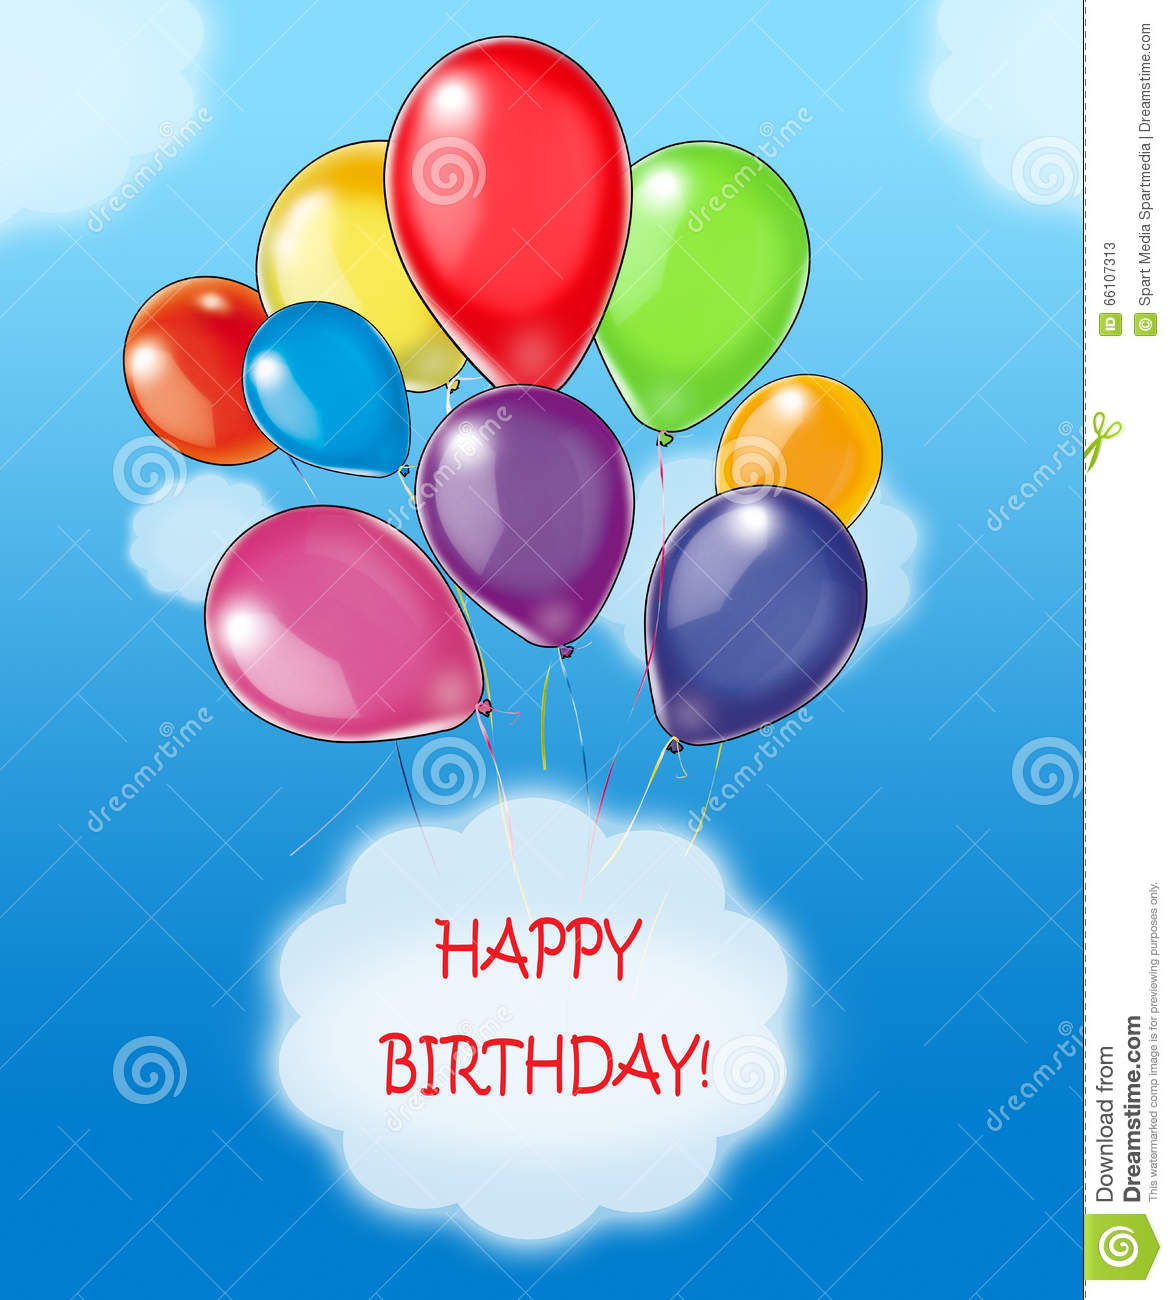 Download Happy Birthday Balloons Kids Wishes Stock Illustration - Illustration of birthday, game: 66107313